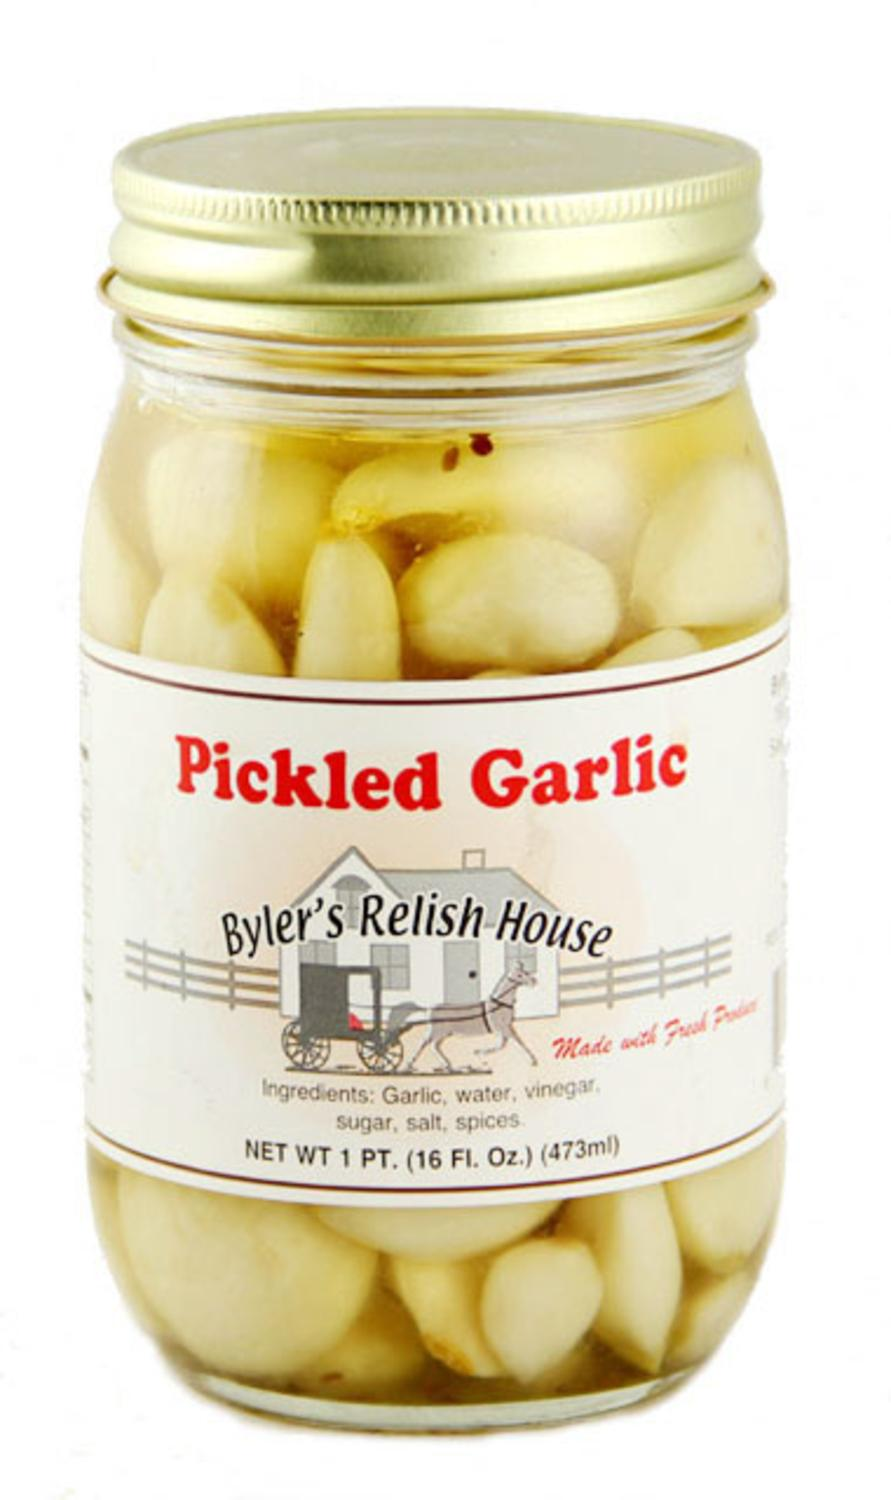 Byler's Relish House Homemade Amish Country Pickled Garlic 16 oz. by Byler's Relish House